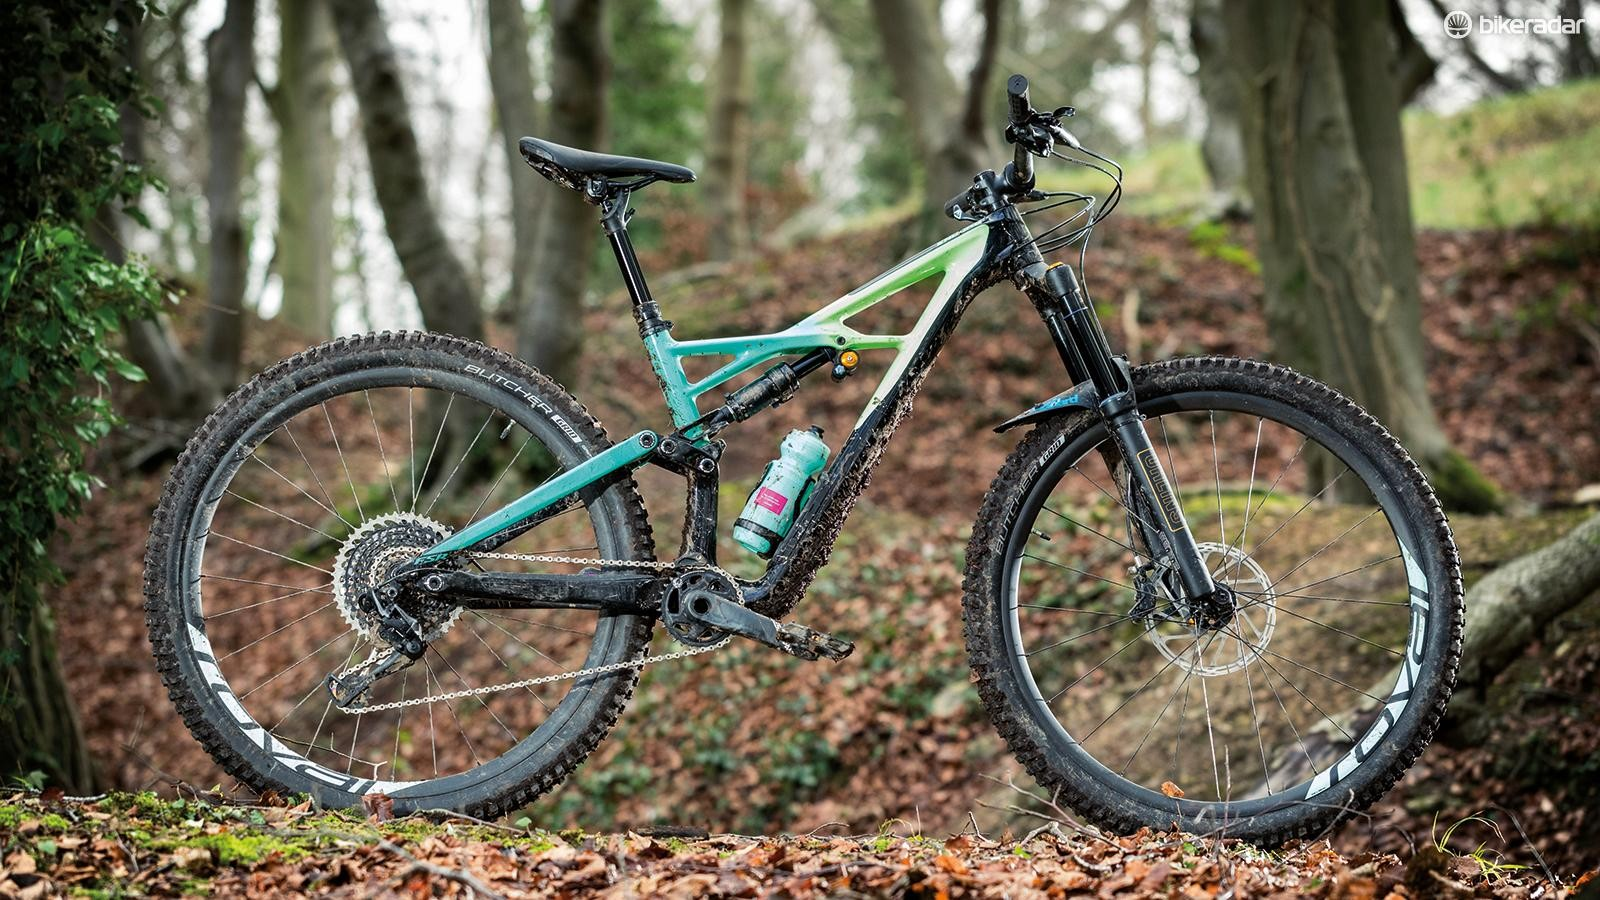 Now longer and lower, the latest Enduro 29 is the best yet